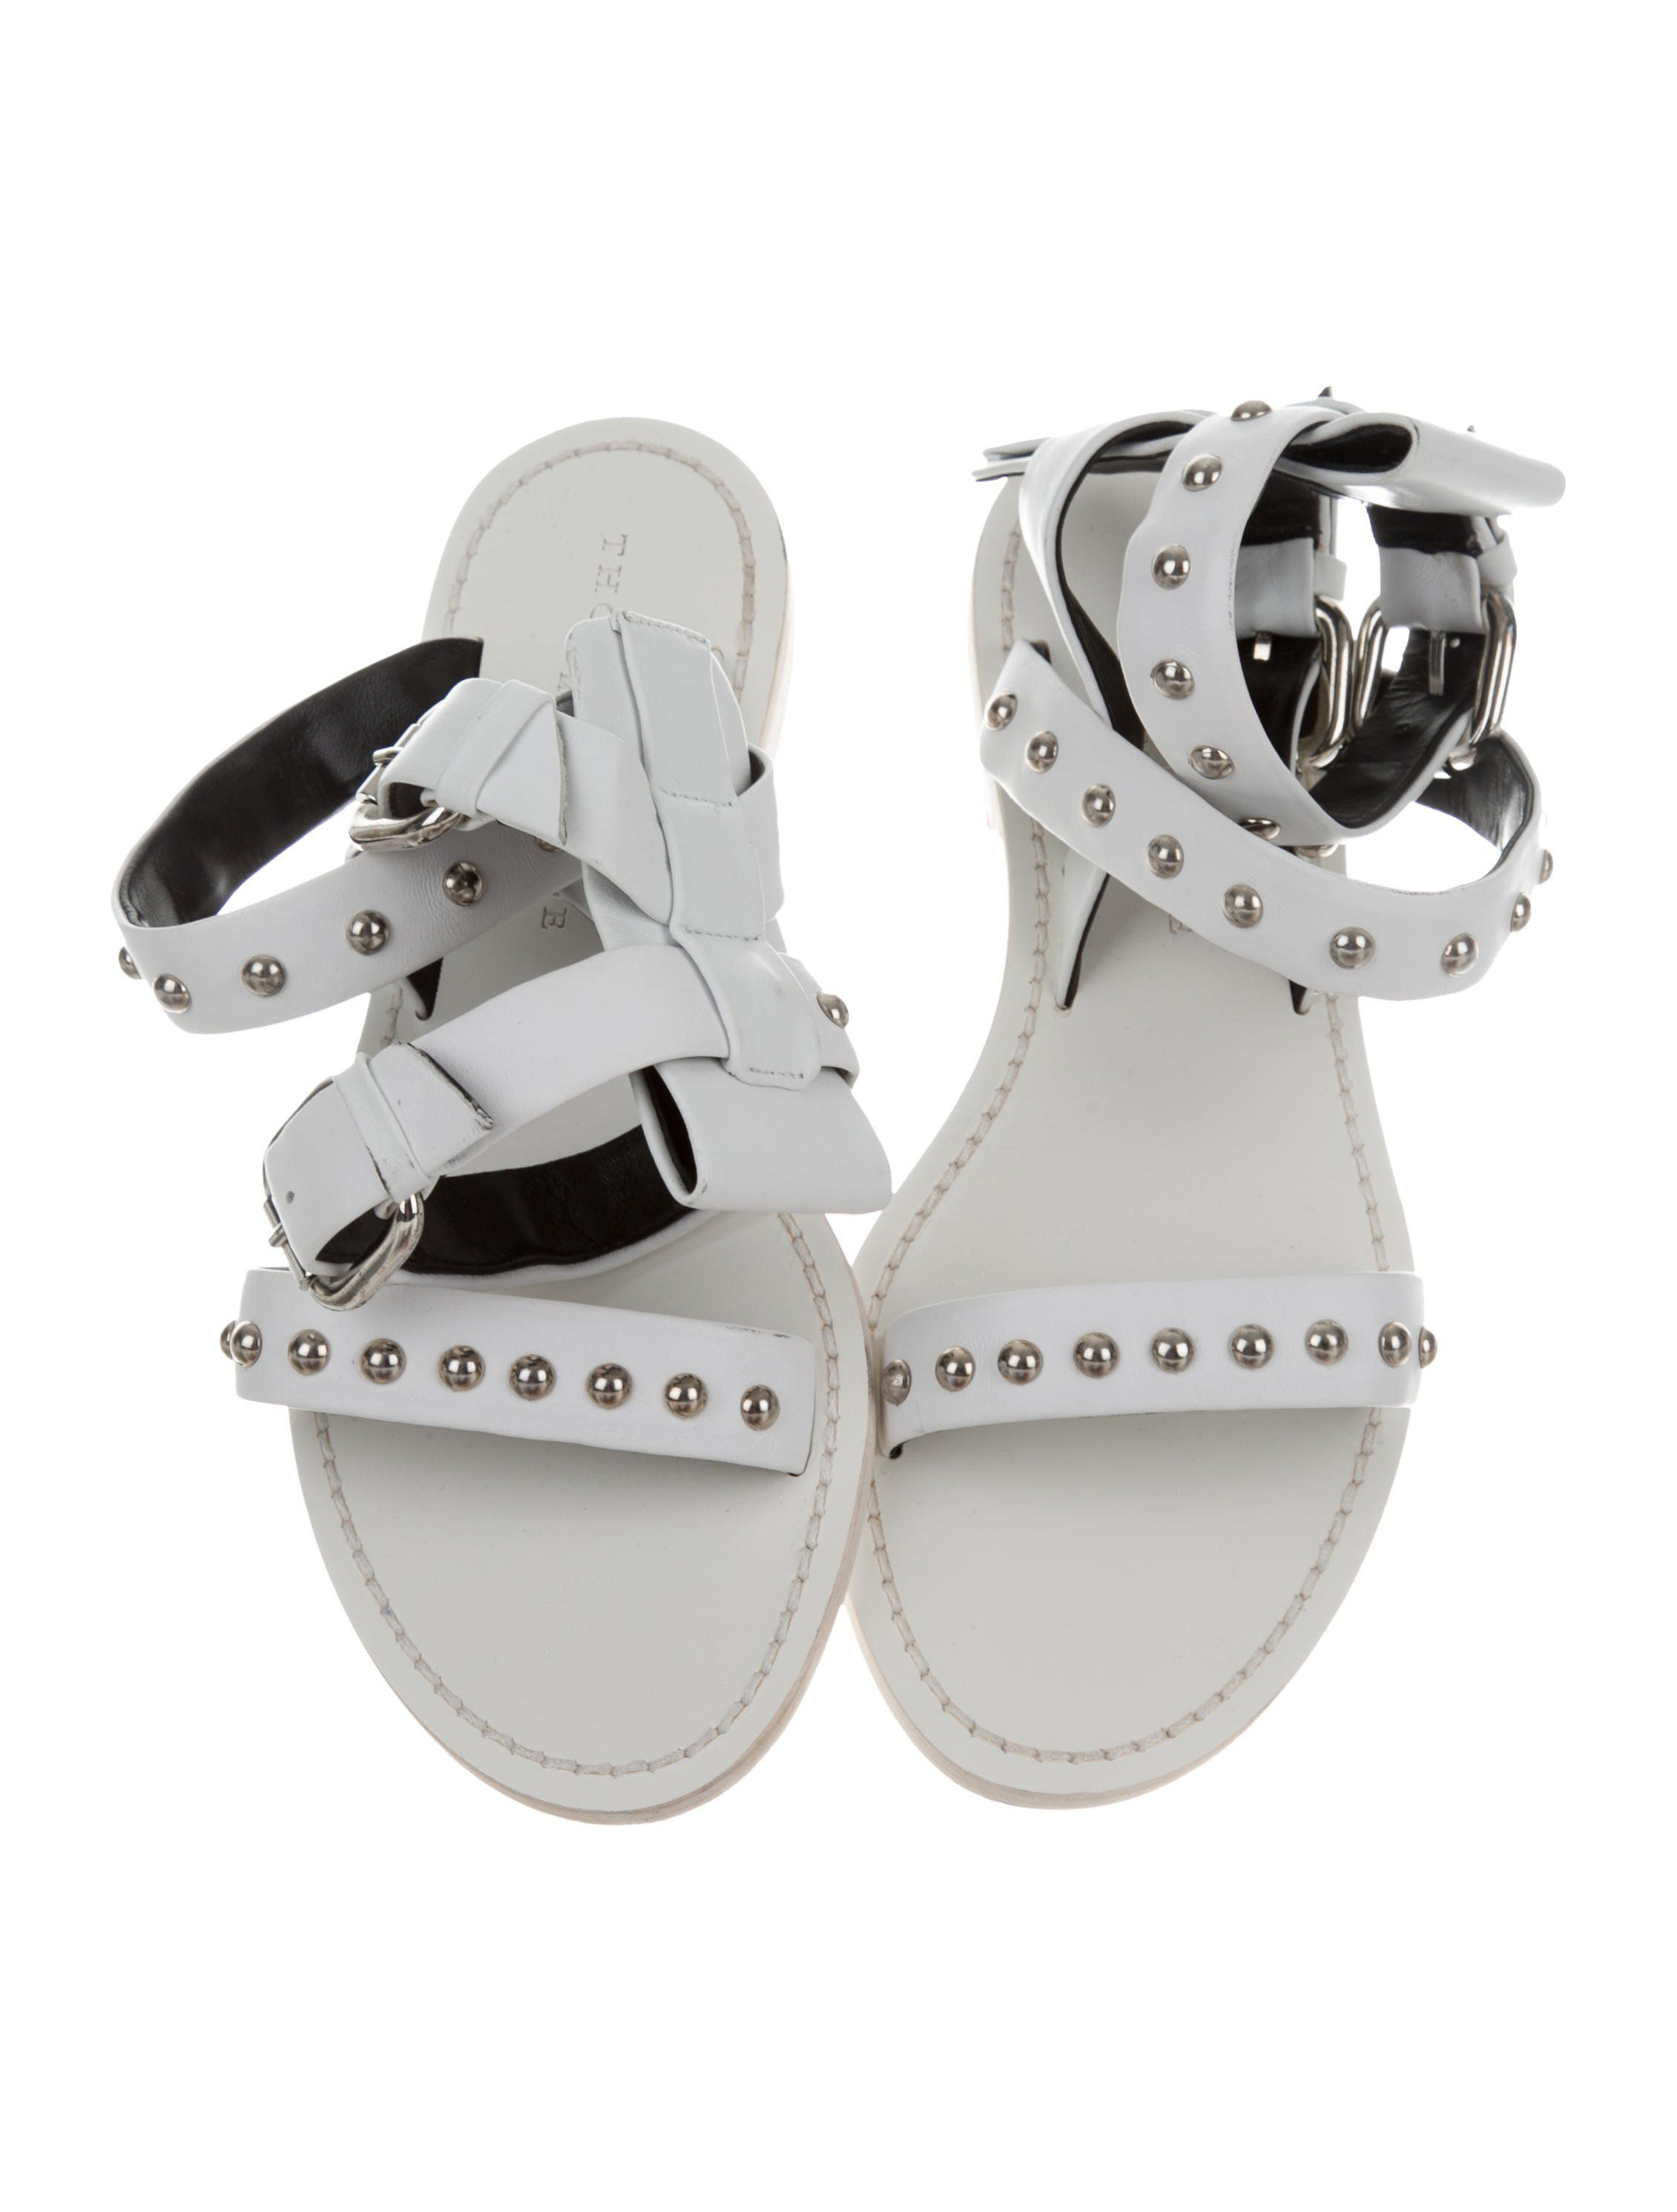 c7d1ff1e07b5 White leather Thomas Wylde studded sandals with stacked heels and buckle  closures at ankles. Includes